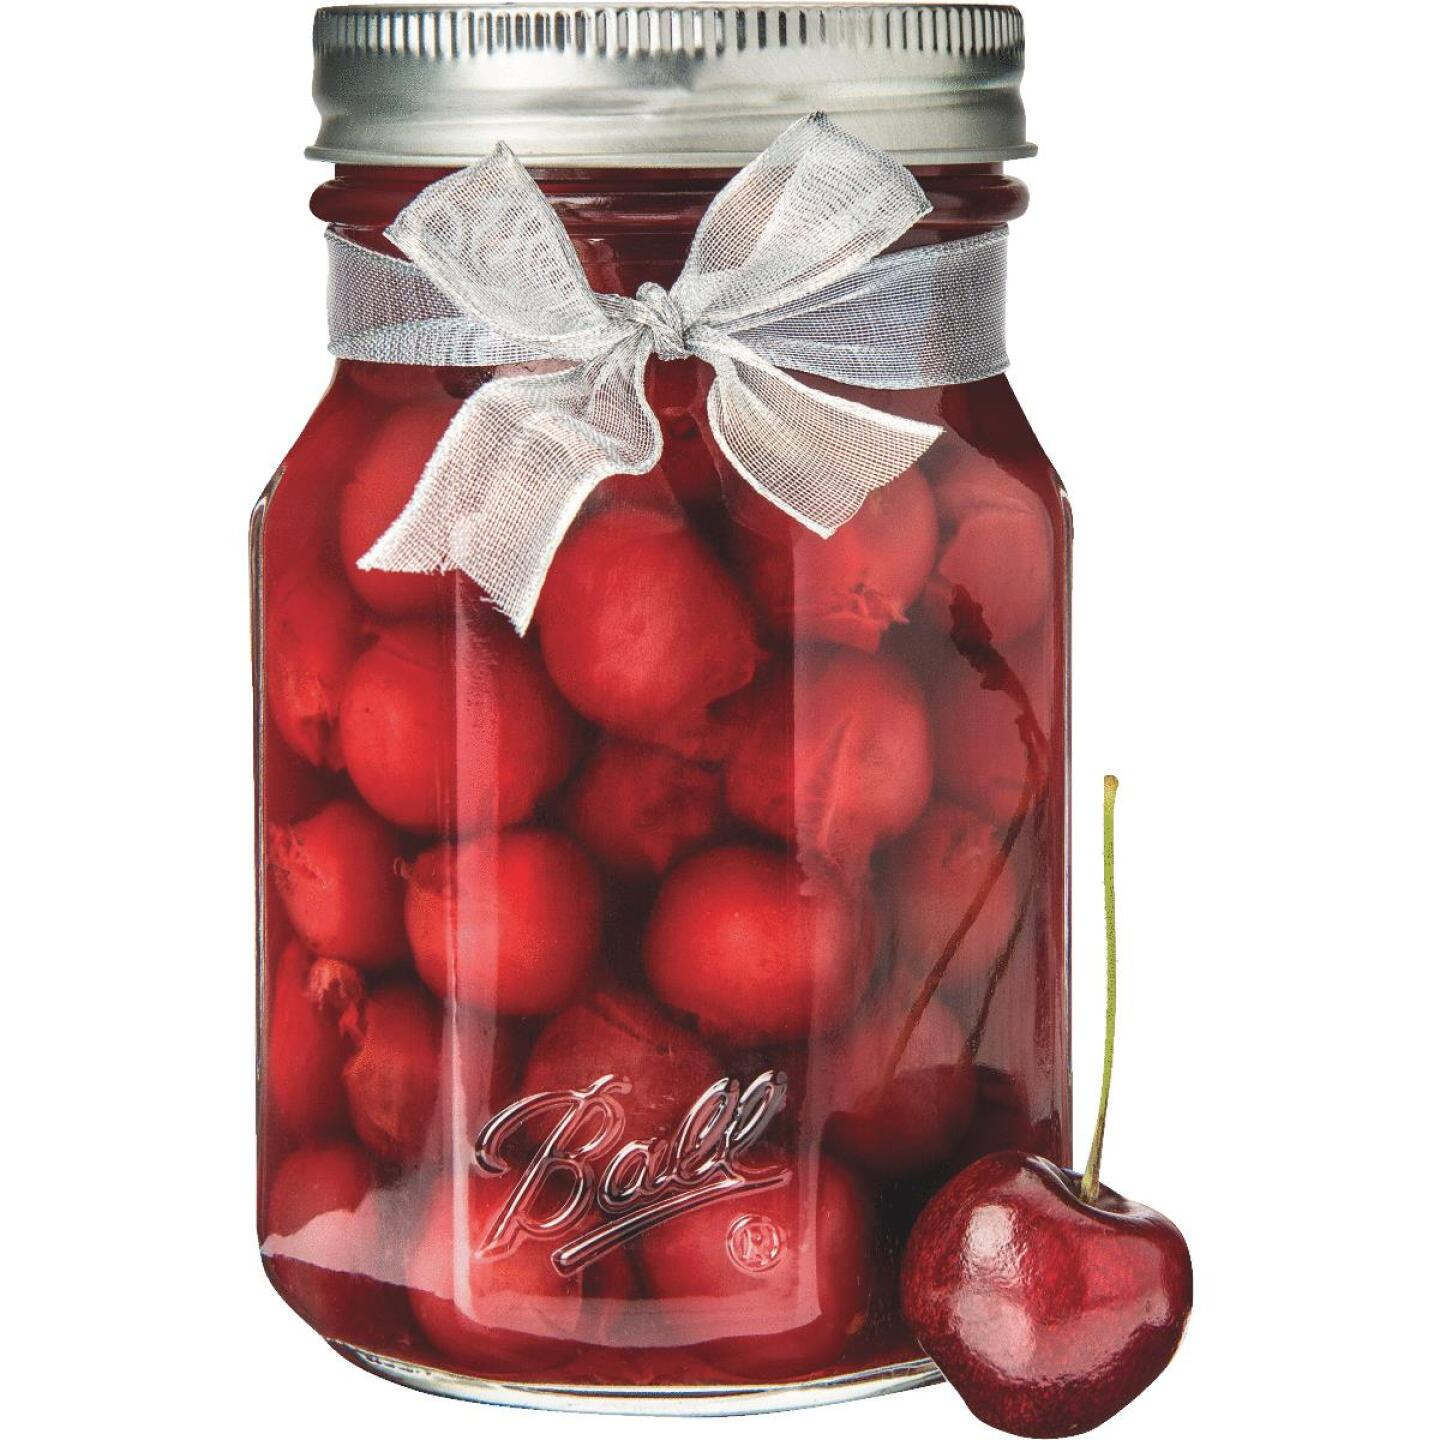 Ball Collection Elite 1 Quart Wide Mouth Sharing Canning Jar (4-Count) Image 1